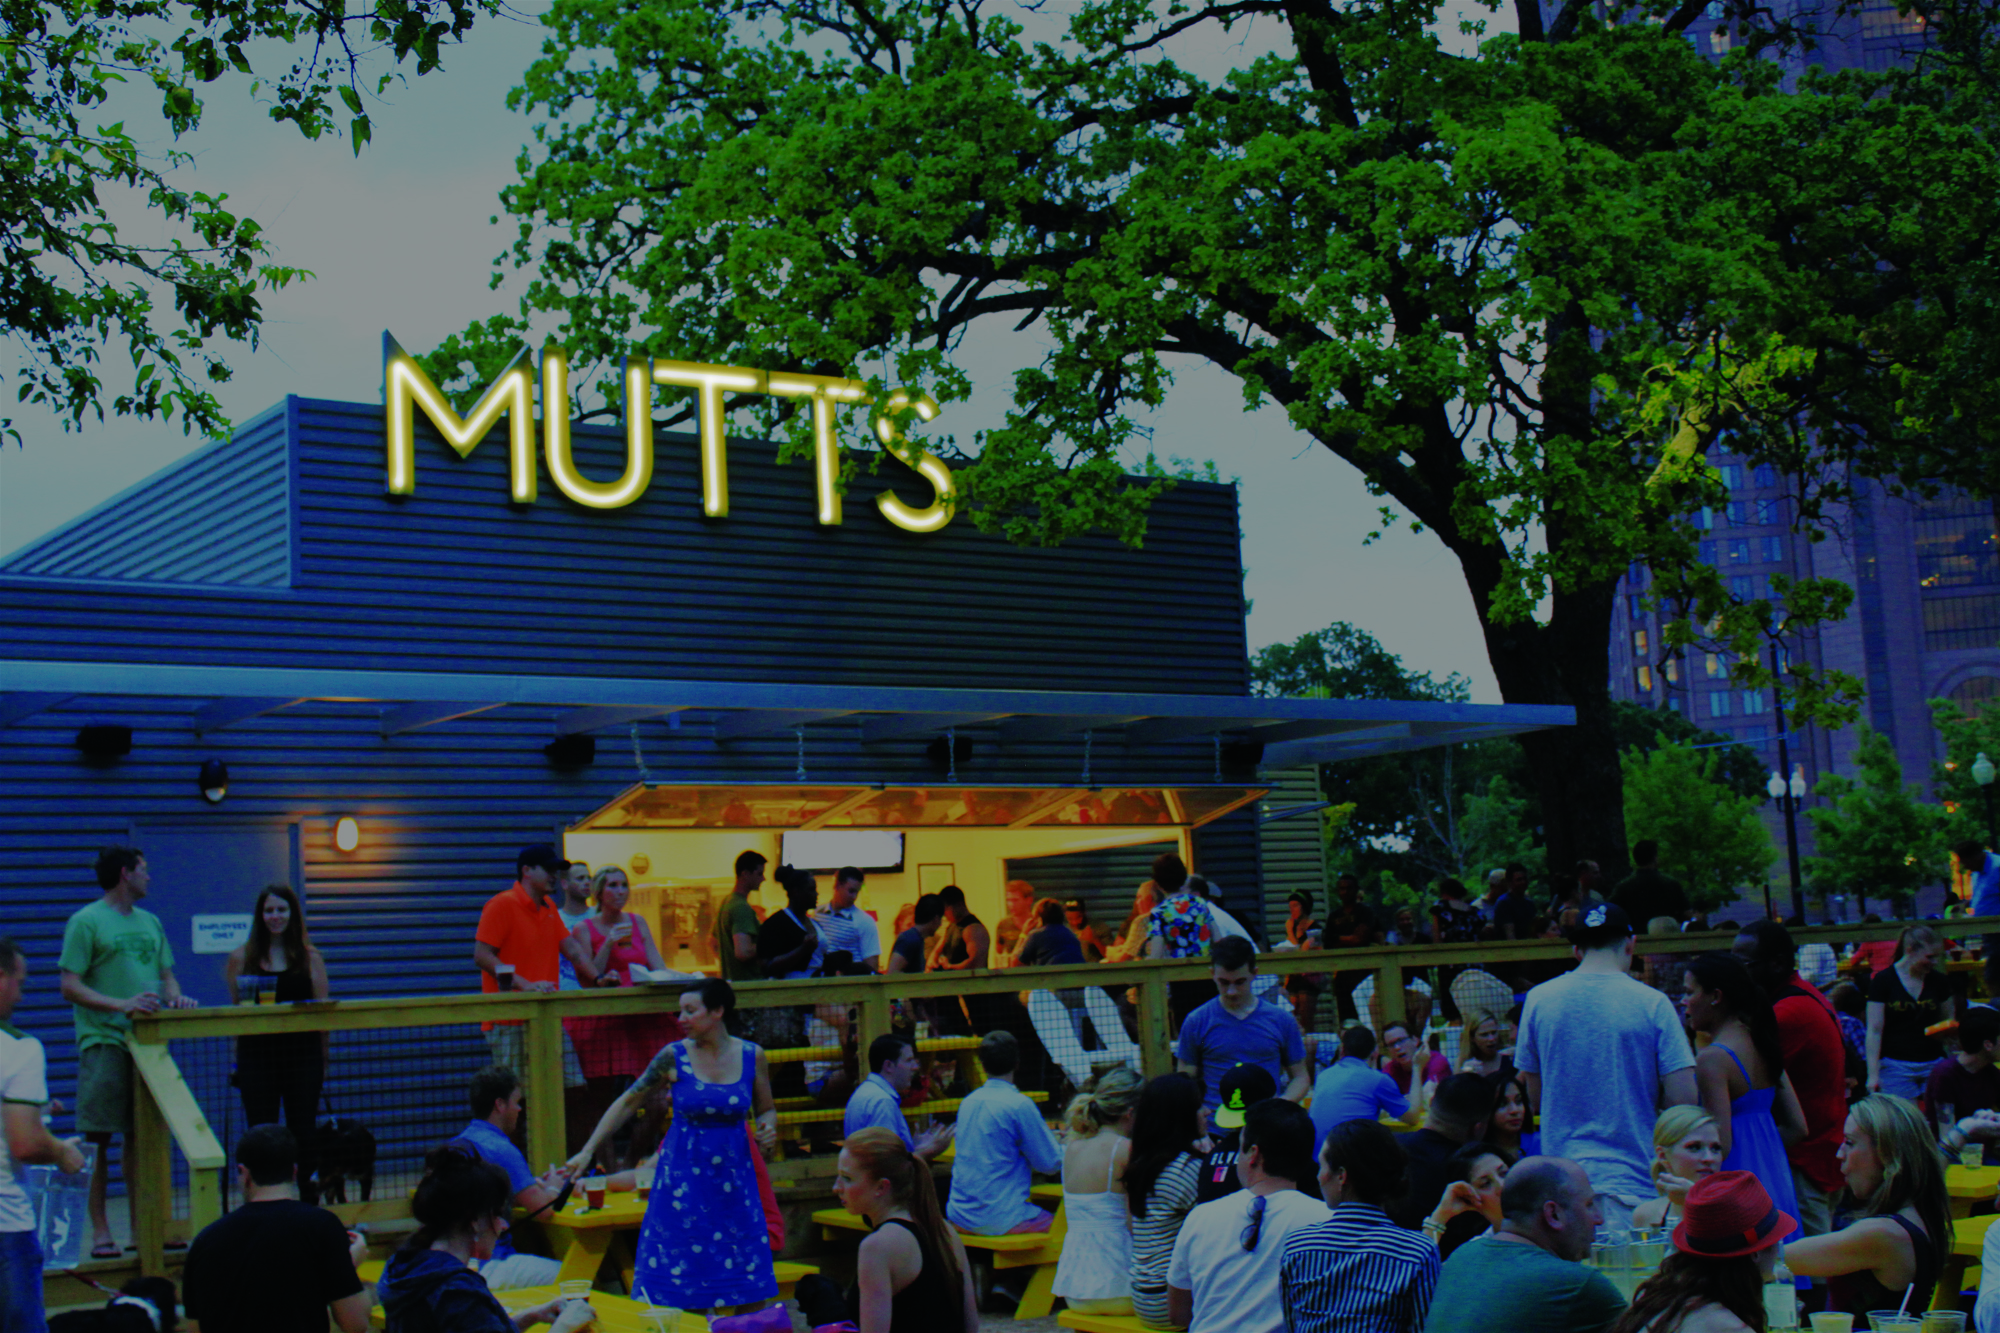 Mutts Cantina